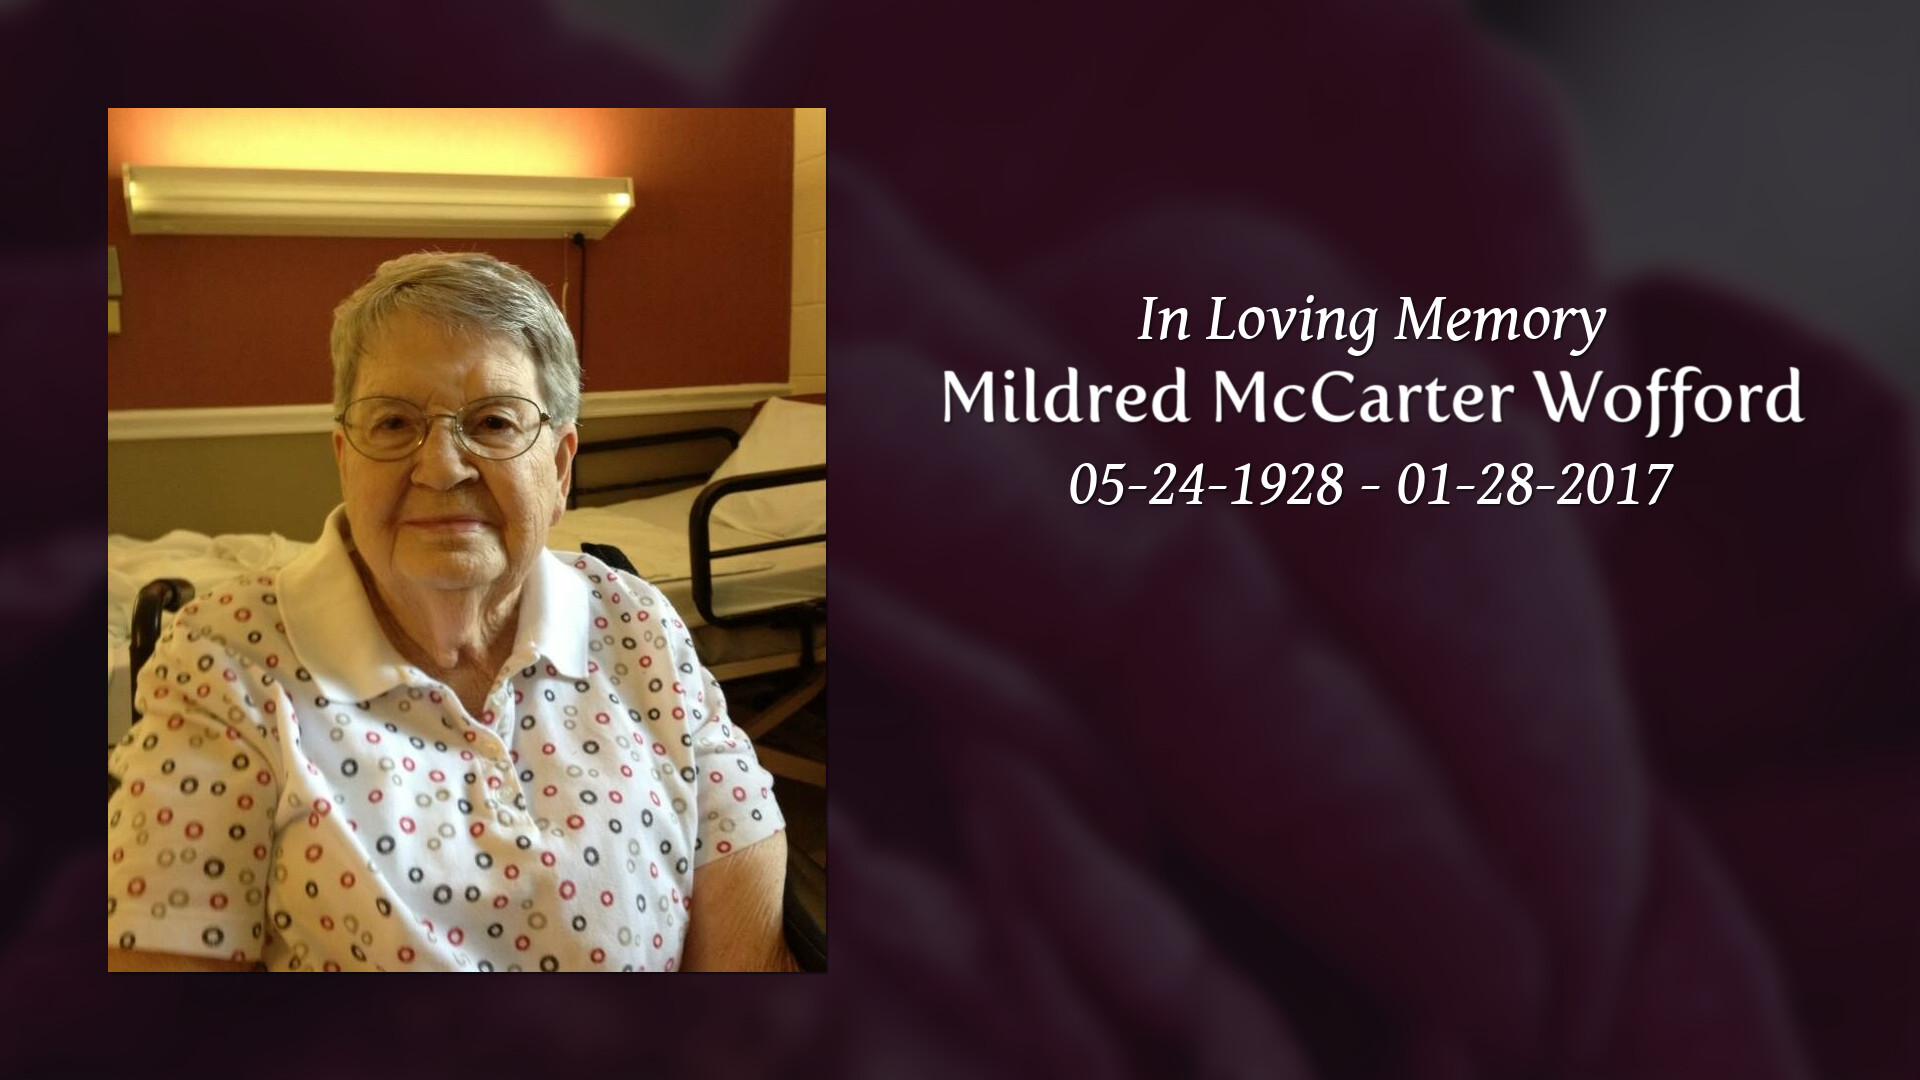 Amanda Dawkins stribling funeral home mildred mccarter wofford ( may 24